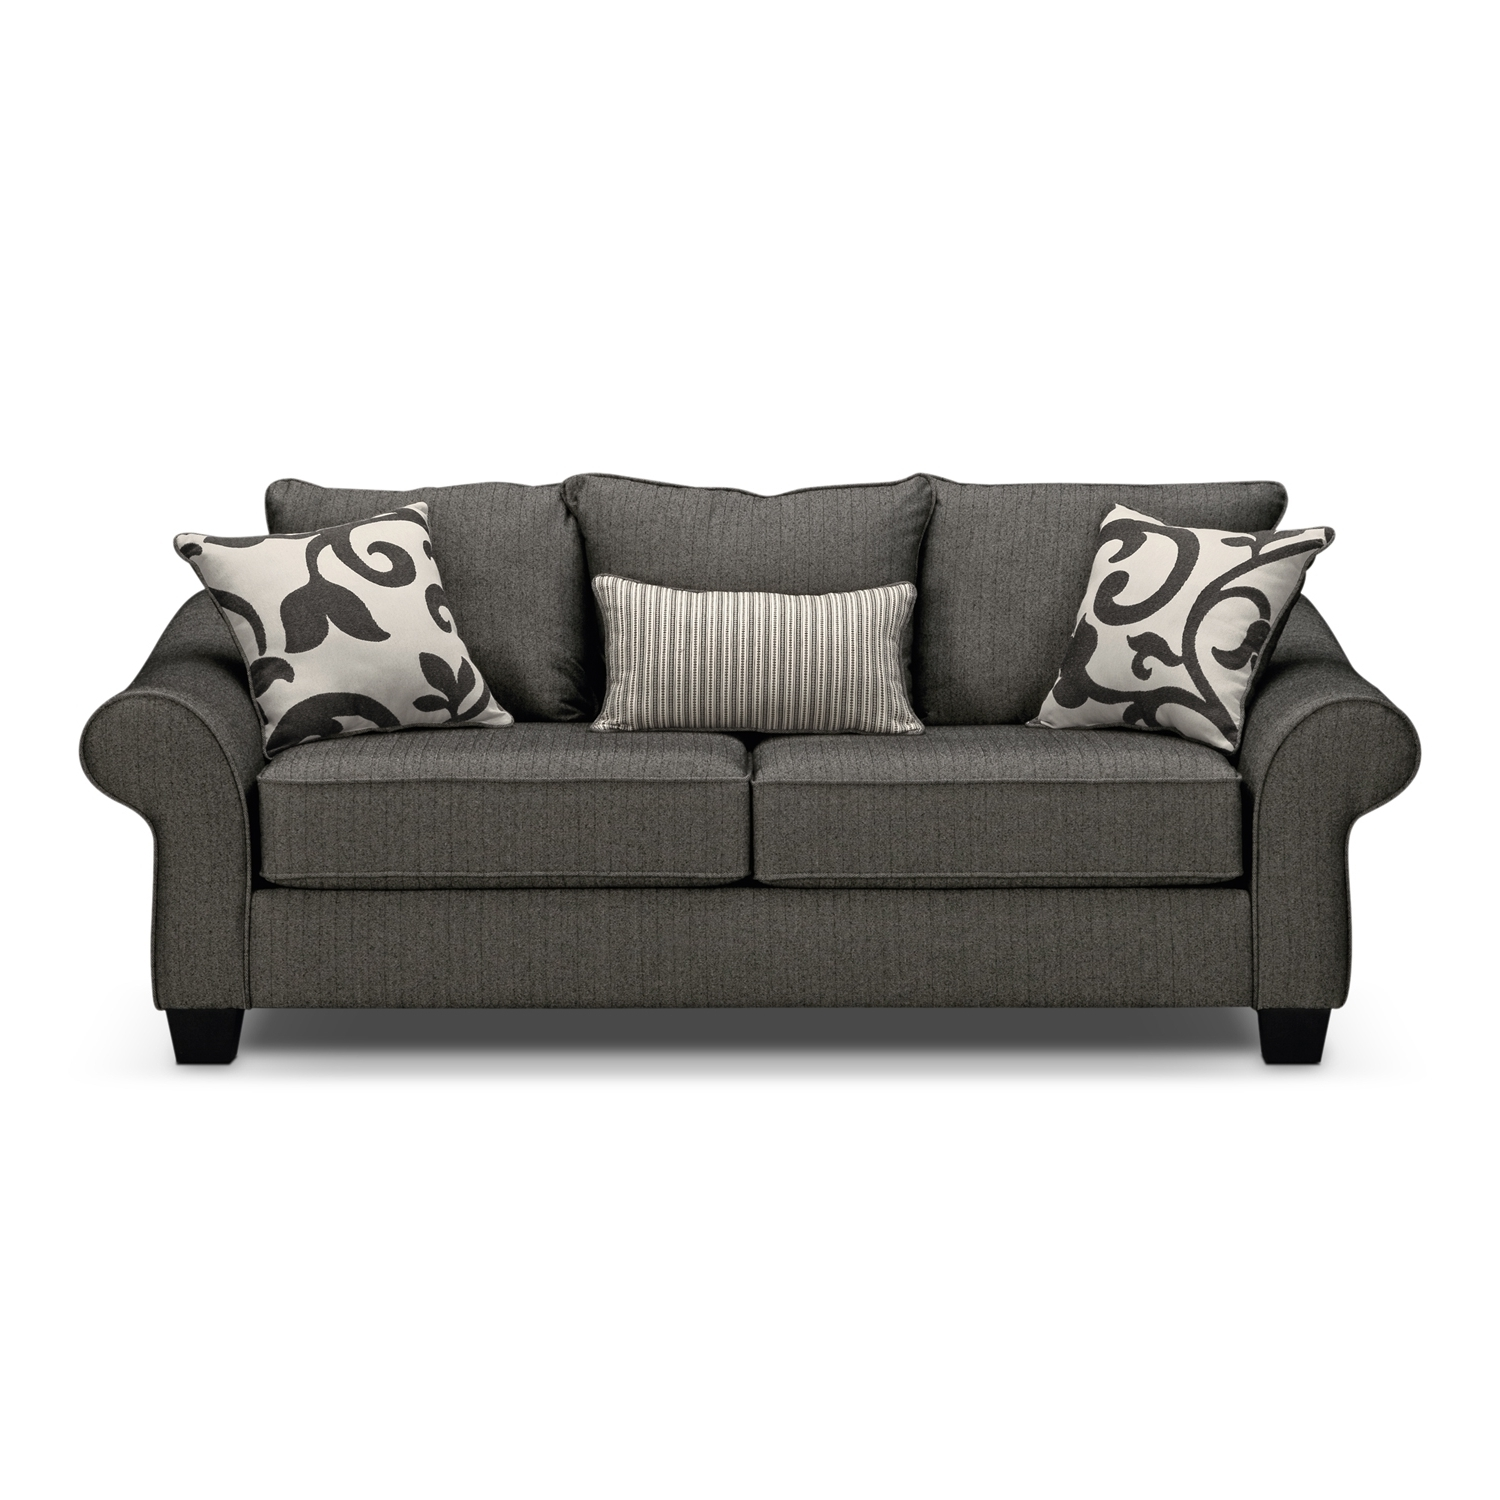 Widely Used Value City Sofas With Gorgeous Value City Furniture Sofas 46 About Remodel Contemporary (View 15 of 15)